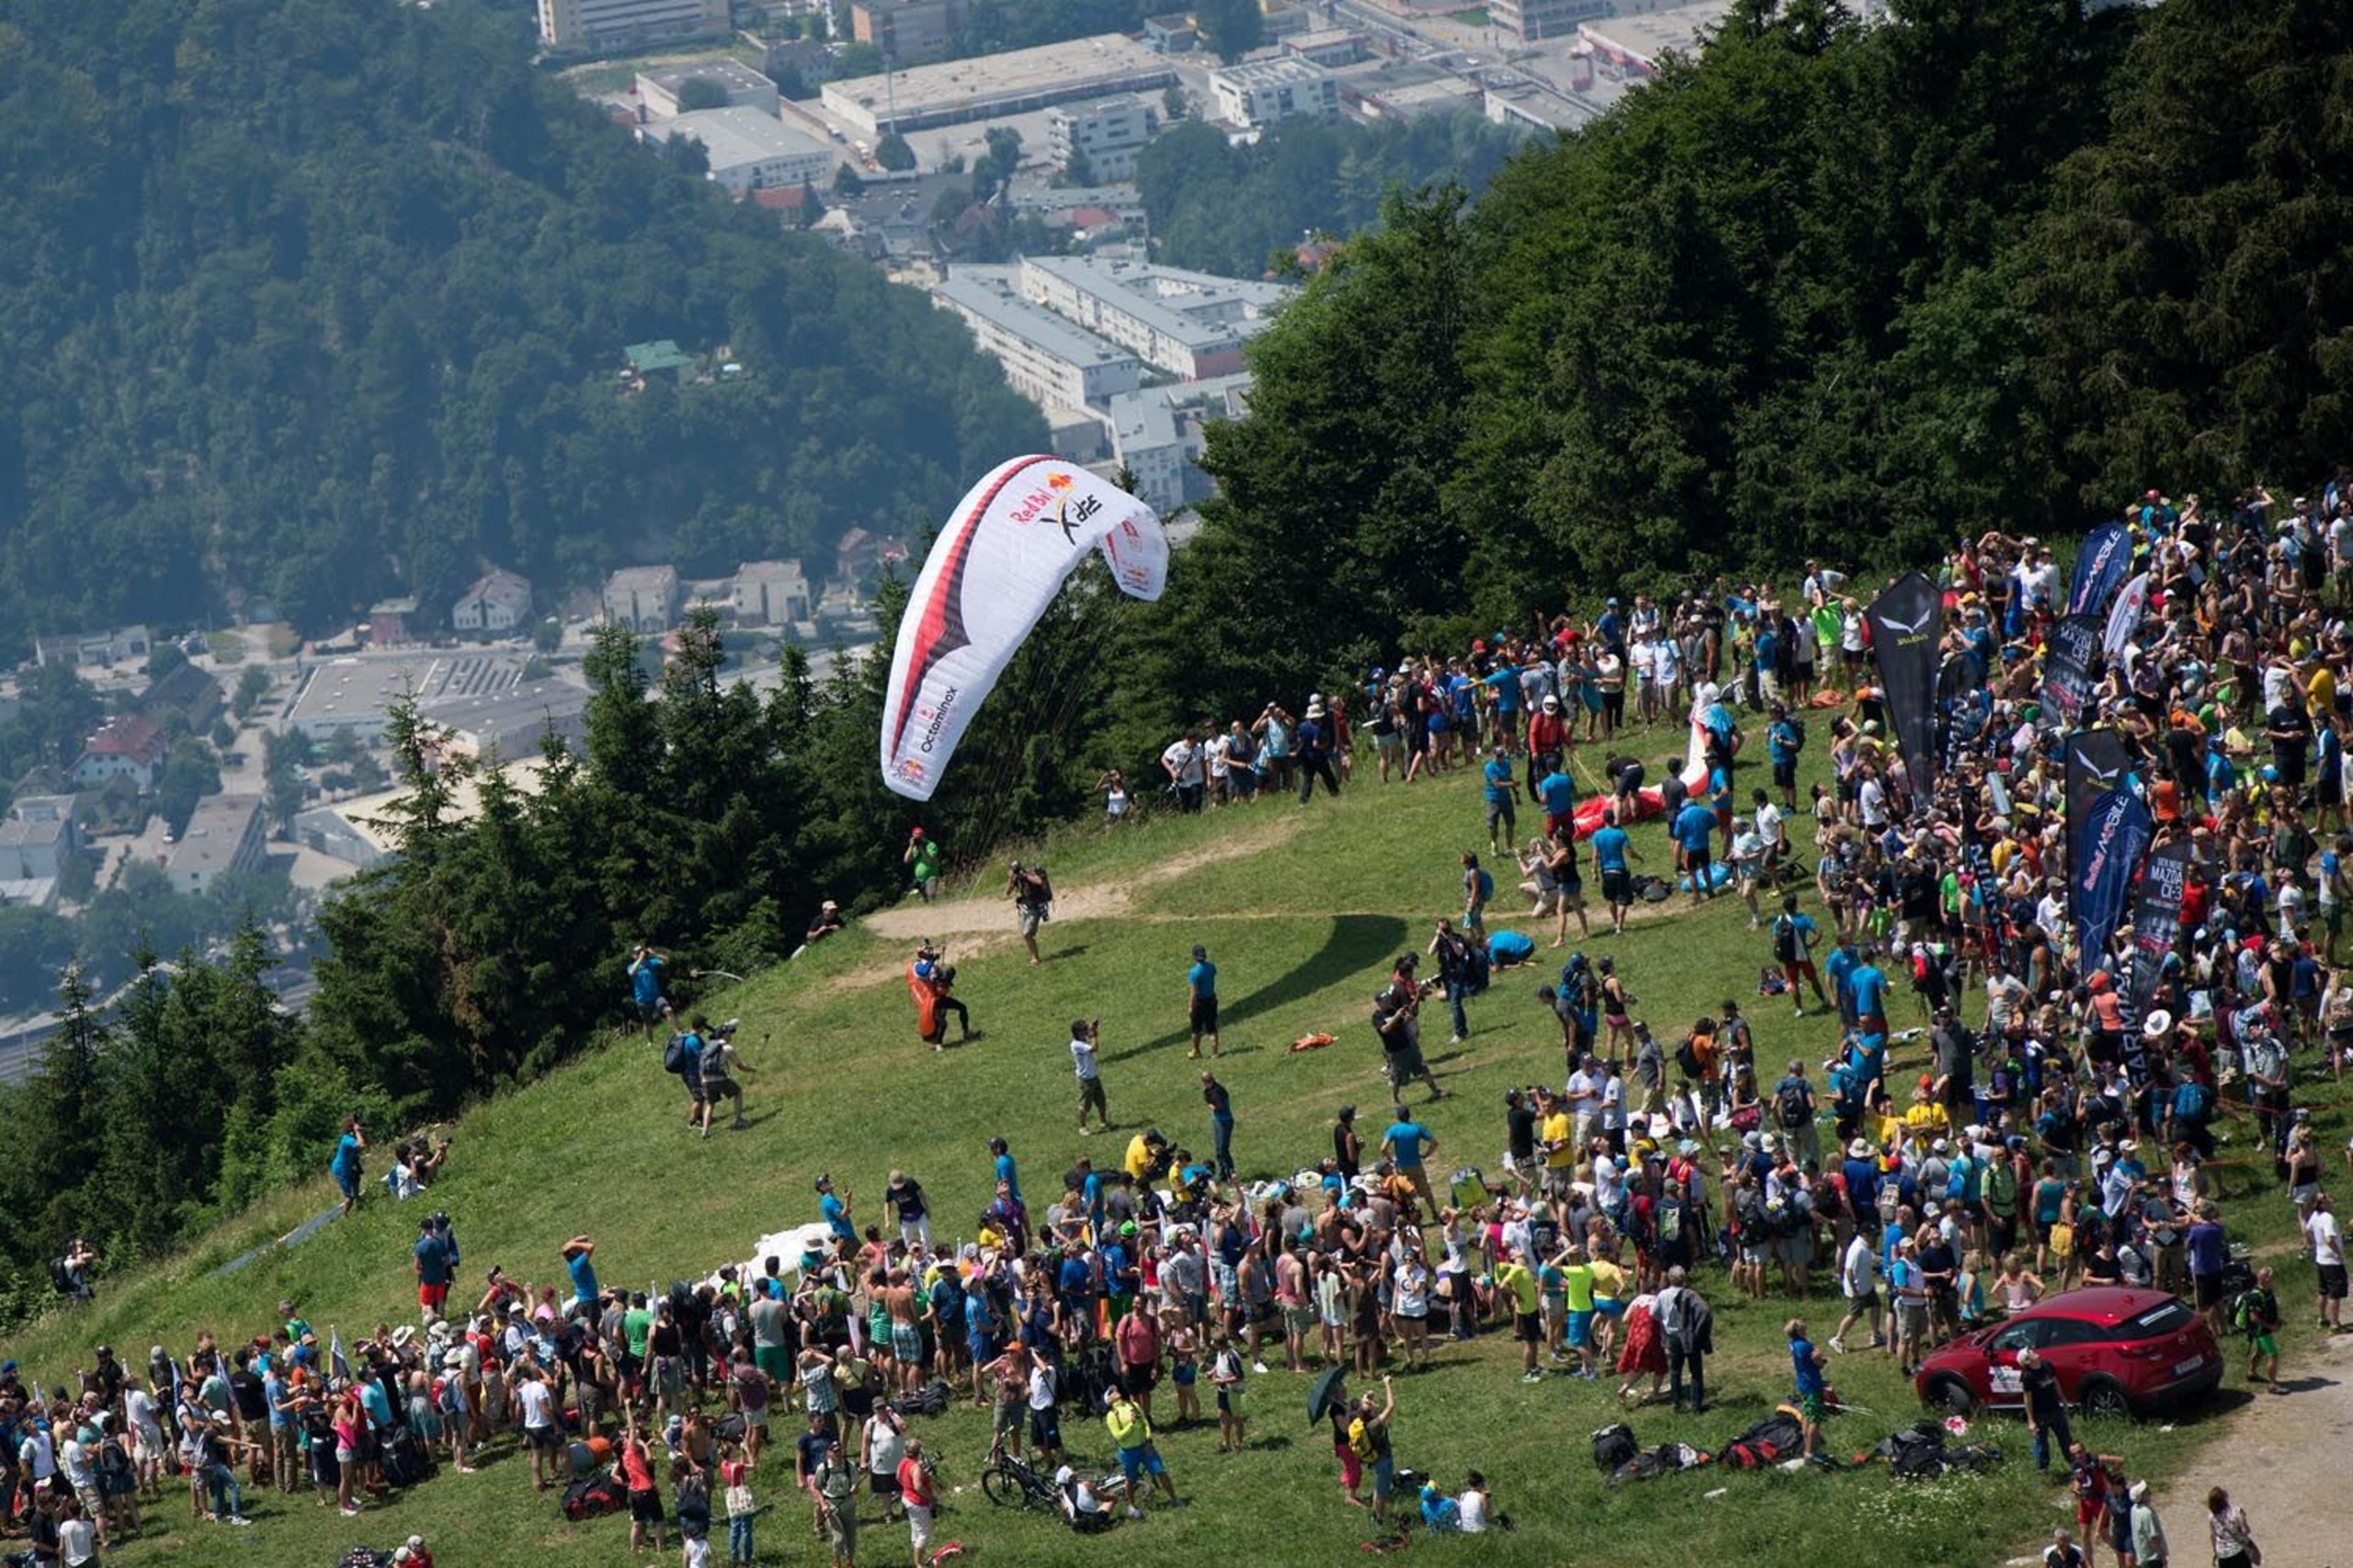 Competitors perform at the Gaisberg Mountain during the adventure race Red Bull X-Alps in Salzburg, on July 5th, 2015.